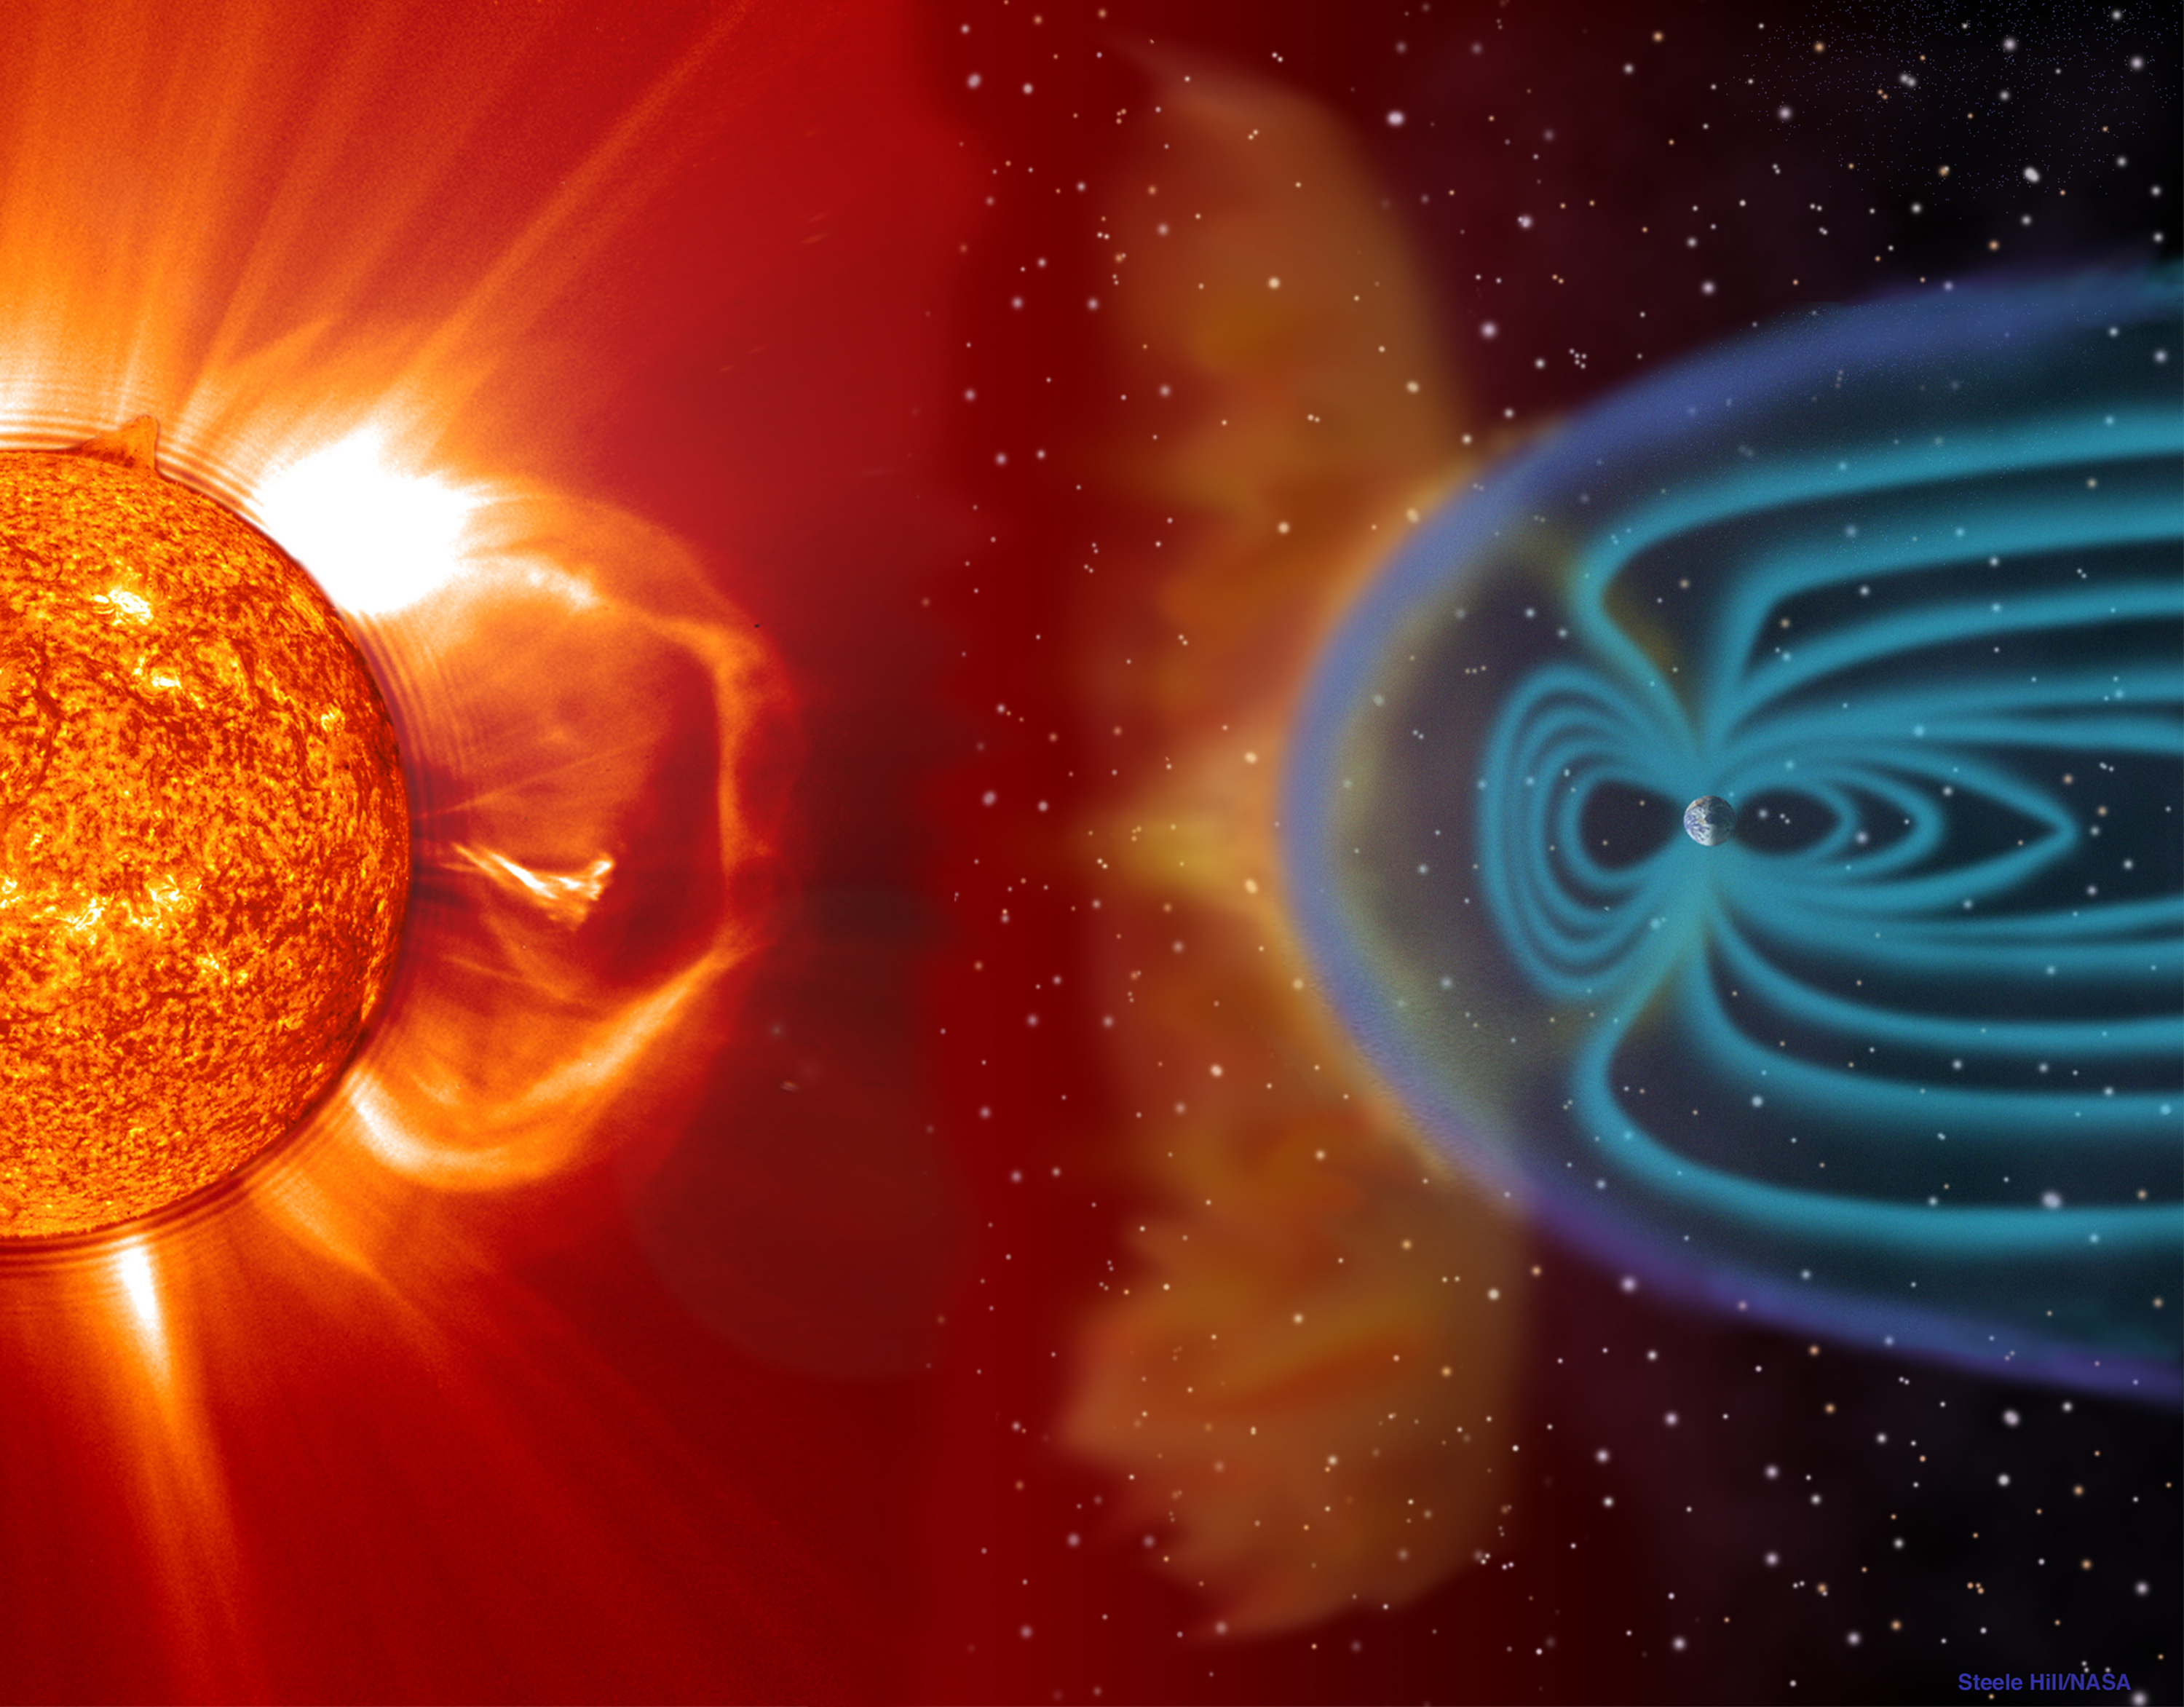 THE SUN-EARTH CONNECTION; NASA ND UNIVERSITY SCIENTISTS FROM NATIONAL SPACE SCIENCE AND ECHNOLOGY CENTER (NSSTC) ARE WATCHING THE SUN IN AN EFFORT TO BETTER PREDICT SPACE WEATHER -BLASTS OF PARTICLES & MAGNETIC FIELD FROM THE SUN THAT IMPACT THE MAGNETOSPHERE.  THE MAGNETIC BUBBLE AROUND THE EARTH.